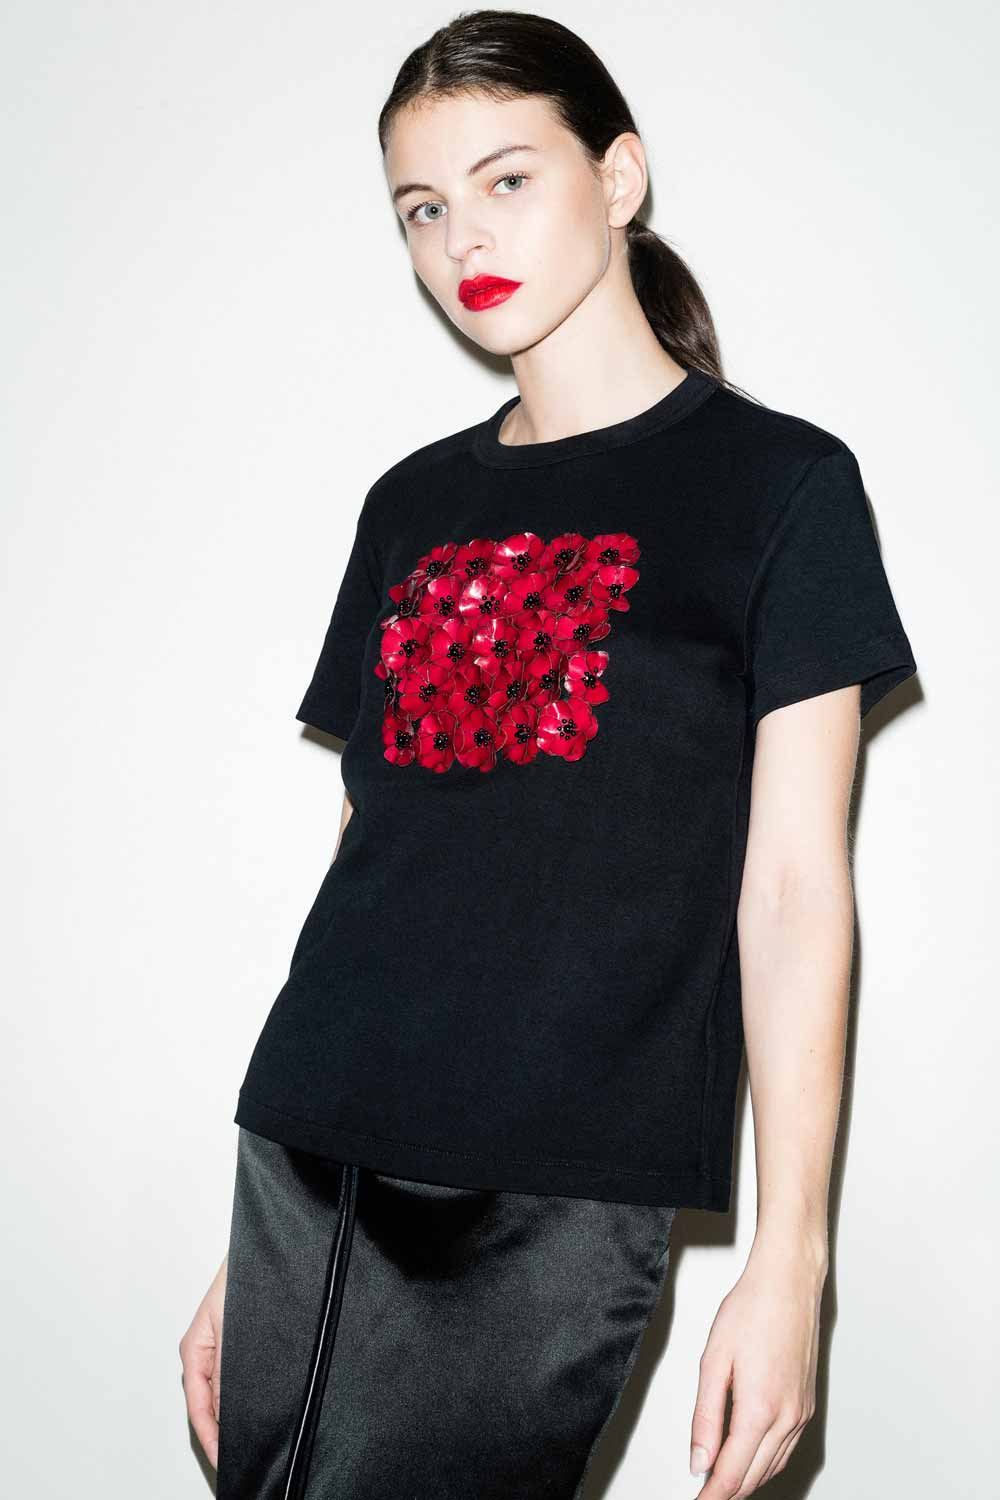 fflag-tee-shirt-poppies-ornement-fleurs-sequins-grenat4